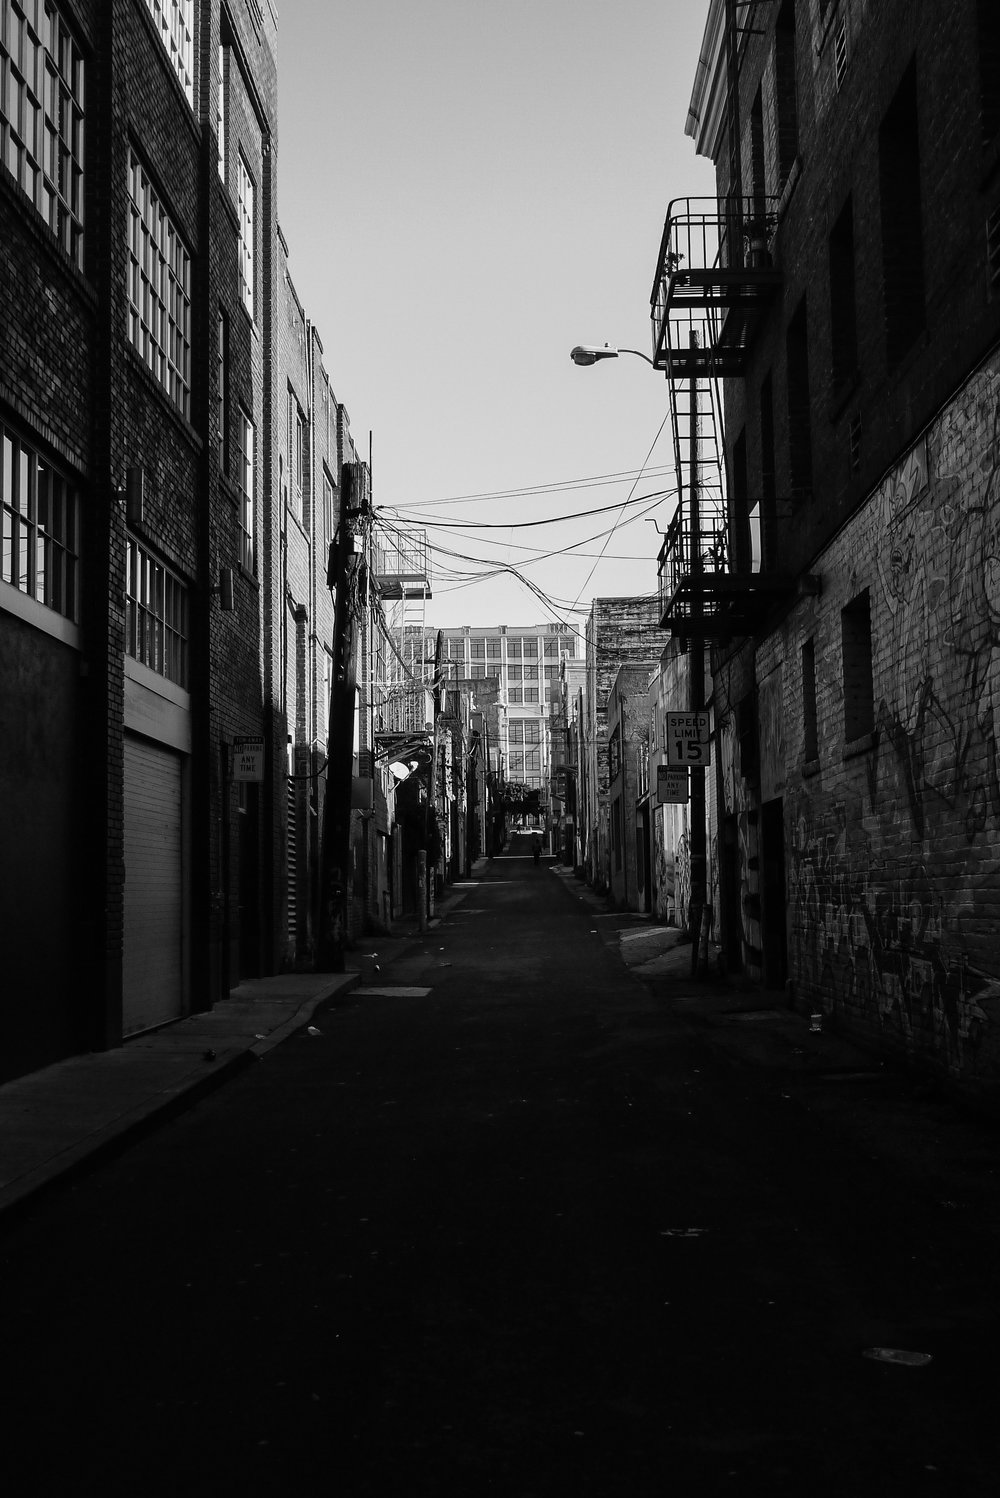 "<p style=""font-family:brandon-grotesque;font-weight:500; font-size:11px; text-center:left; color:light grey;letter-spacing: 1px"">JANUARY 5, 2017 • A PATH TO NOWHERE • 📍 San Francisco, CA</p>"